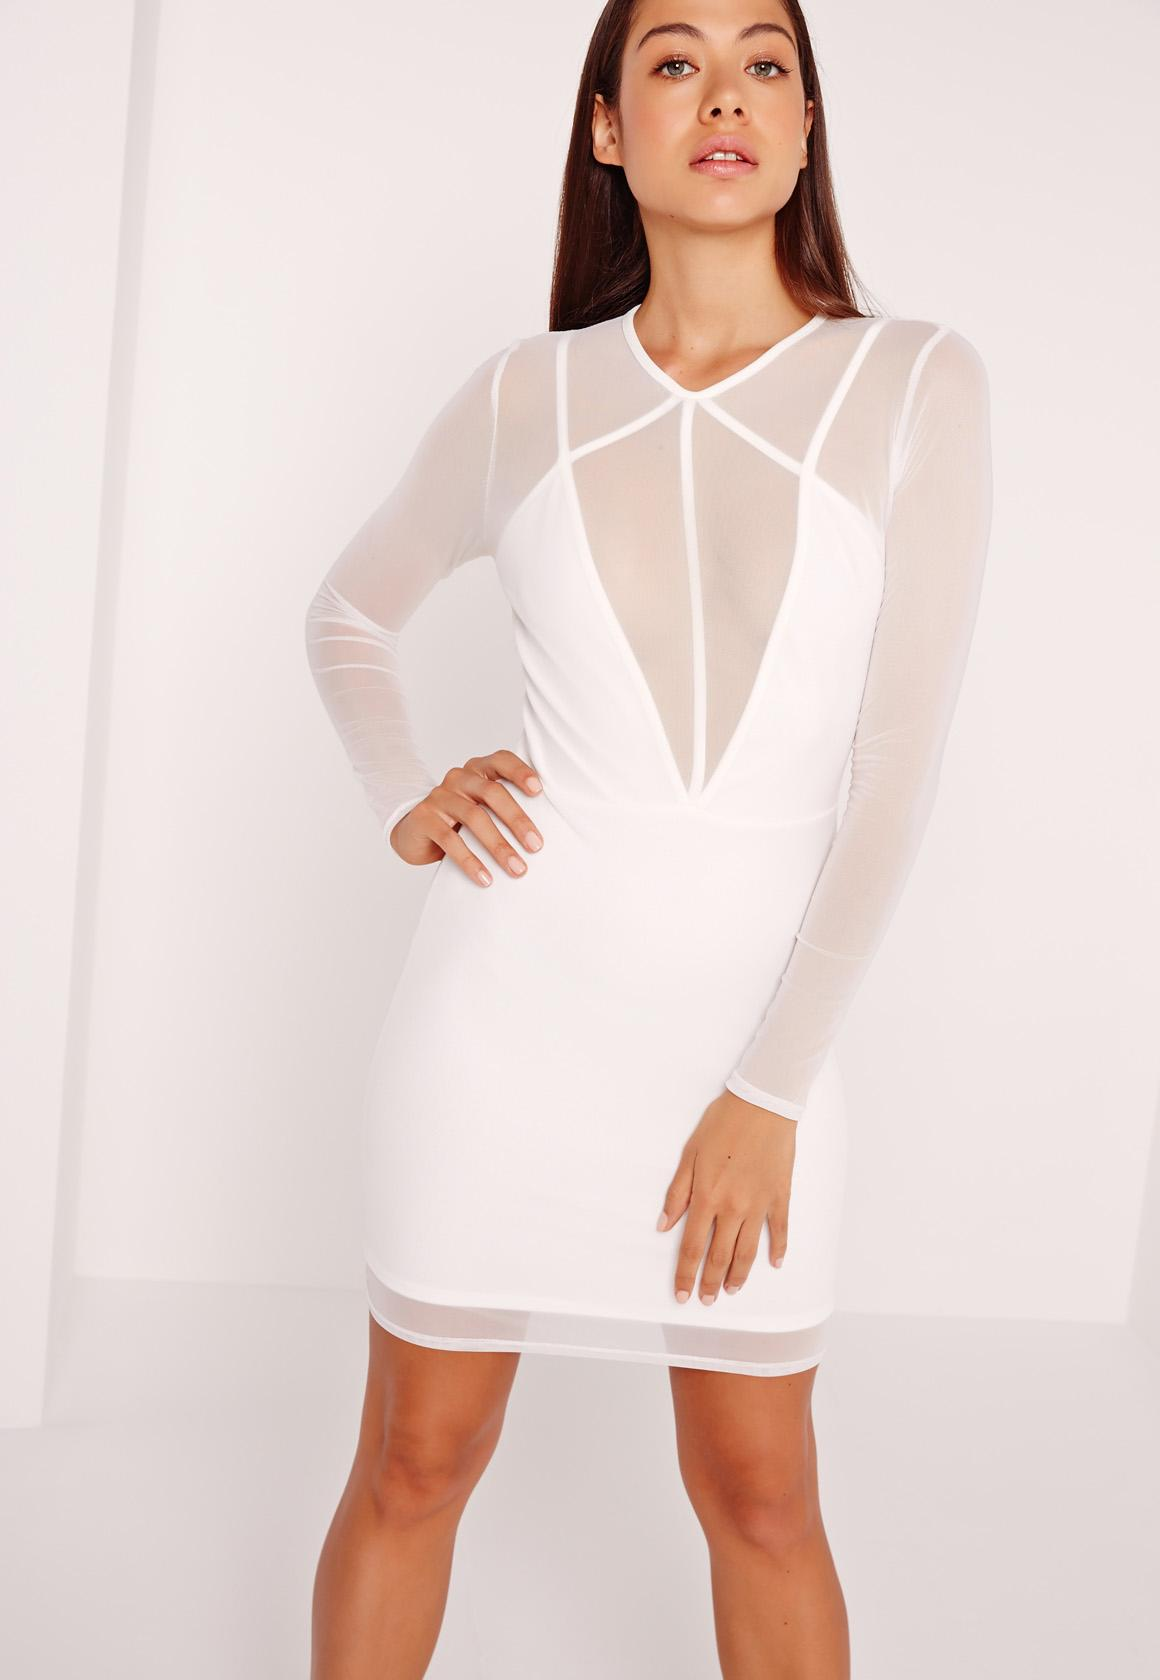 Mesh Dresses | Sheer Dresses - Missguided